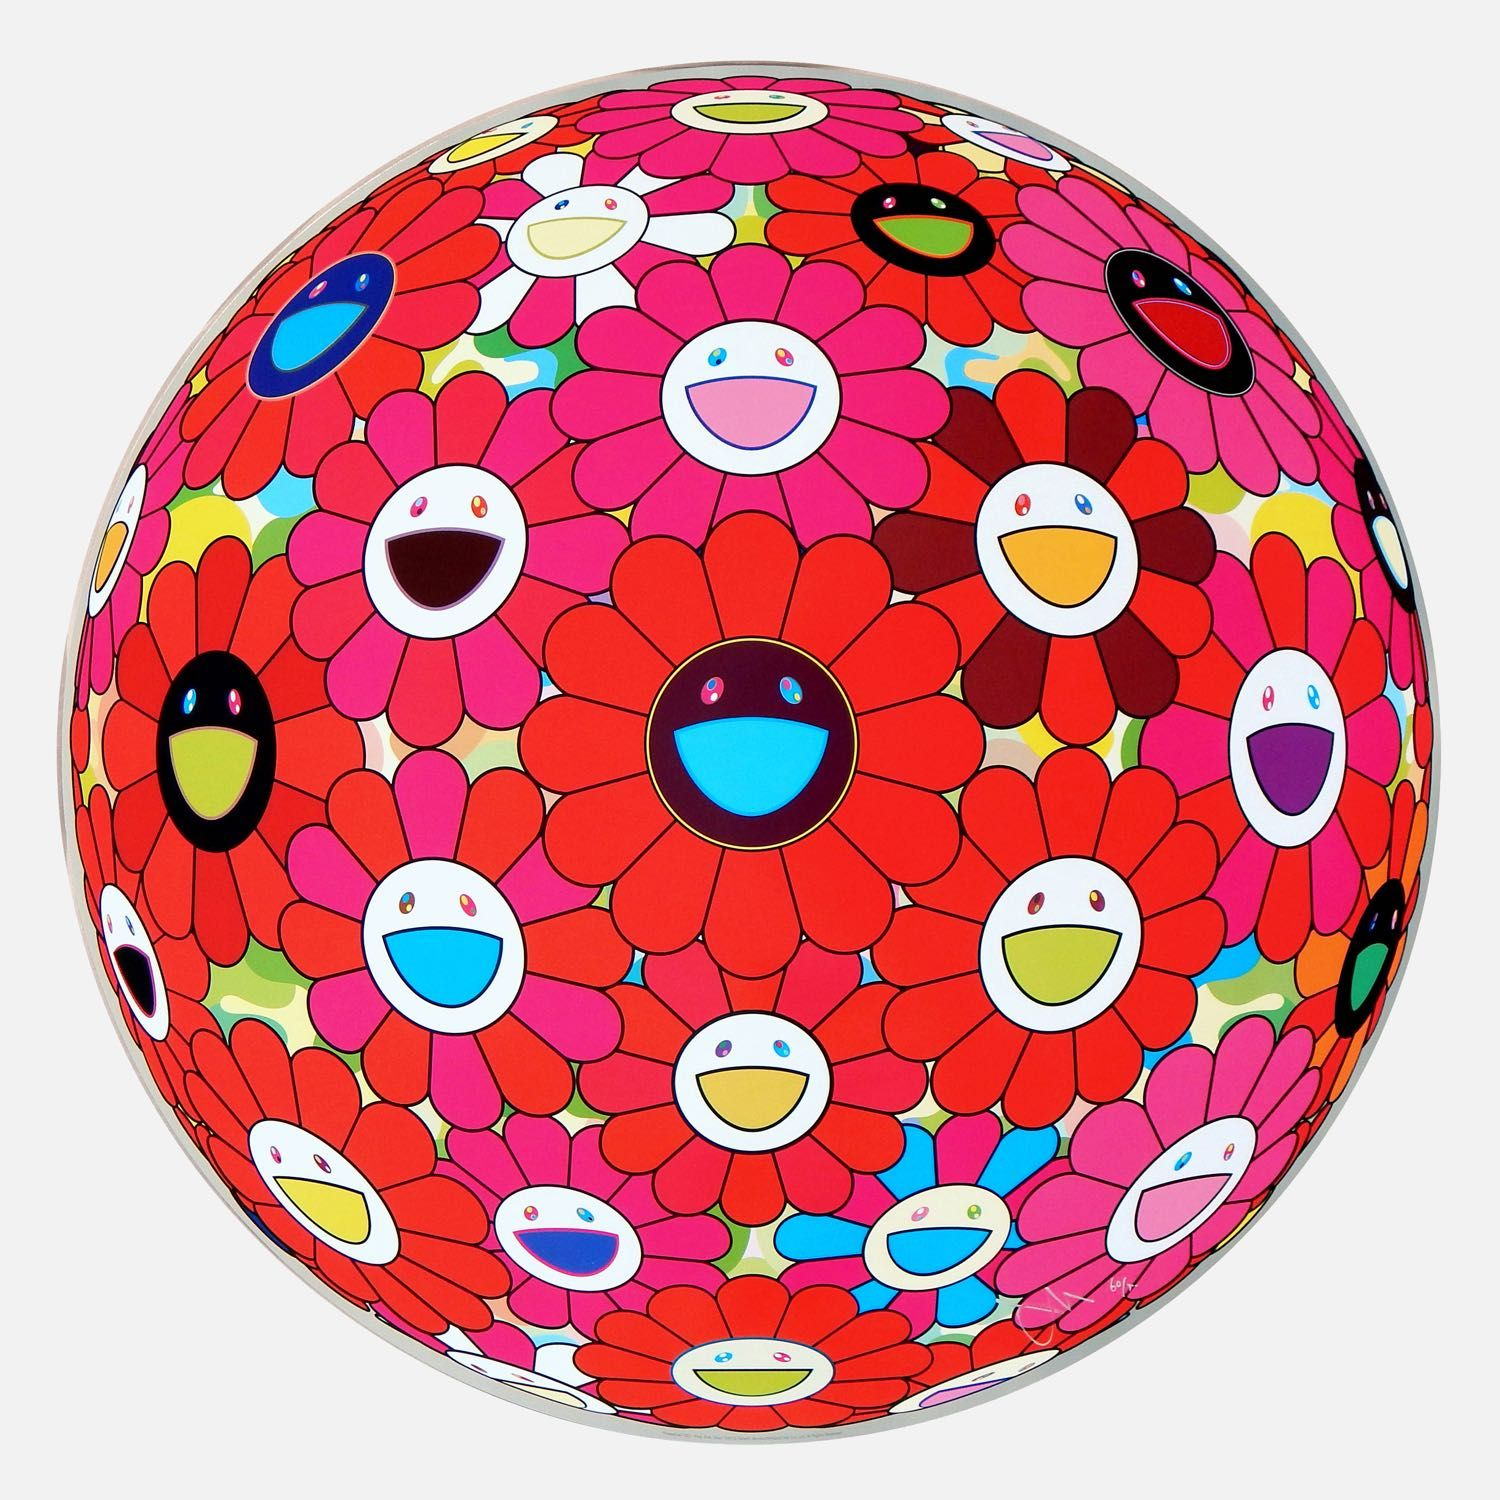 Pin by Eunice Pascual on Murakami Takashi murakami